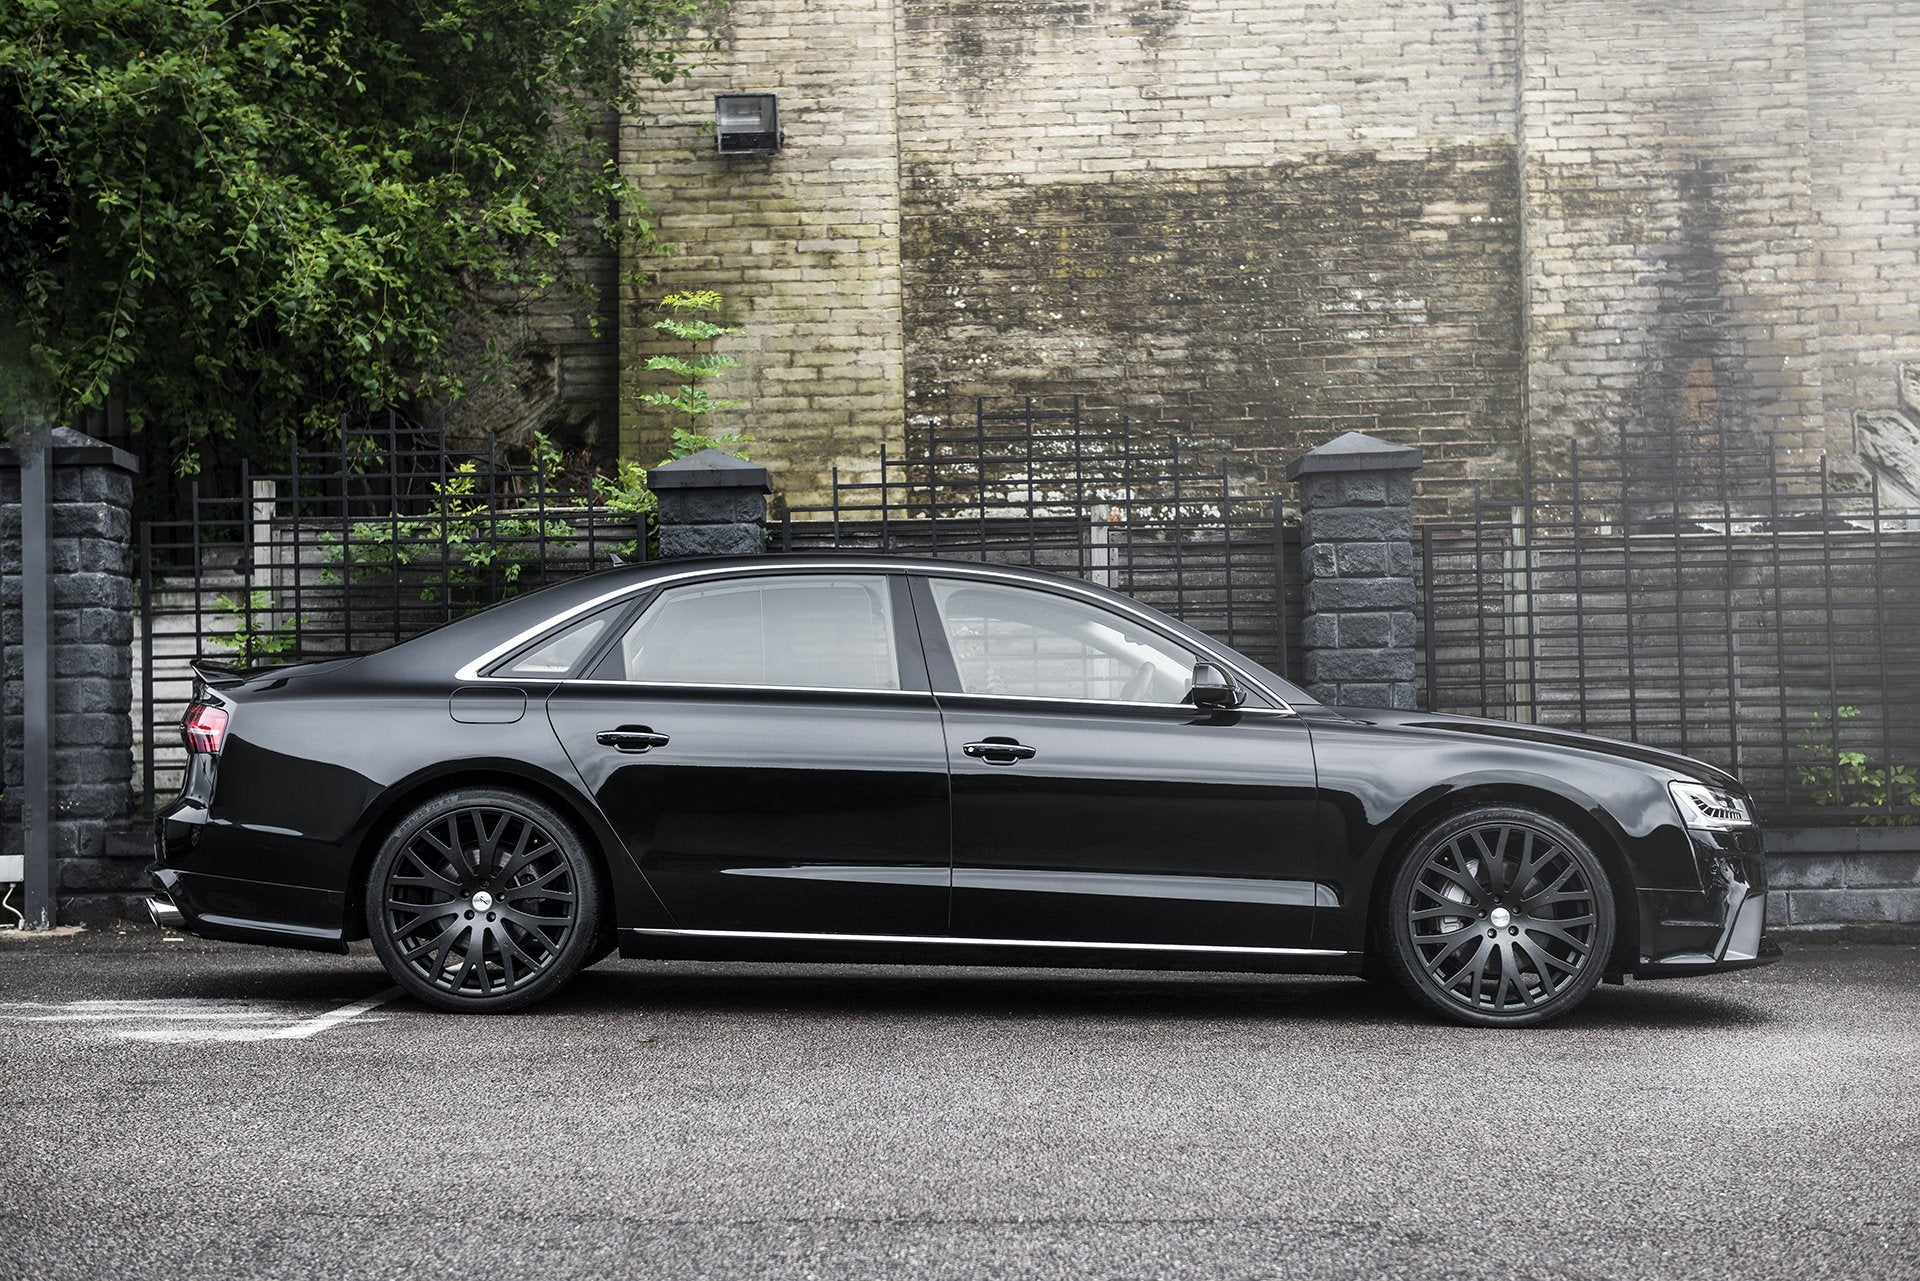 Audi A8 (2011-2017) Rs Exterior Styling Pack by Kahn - Image 4035